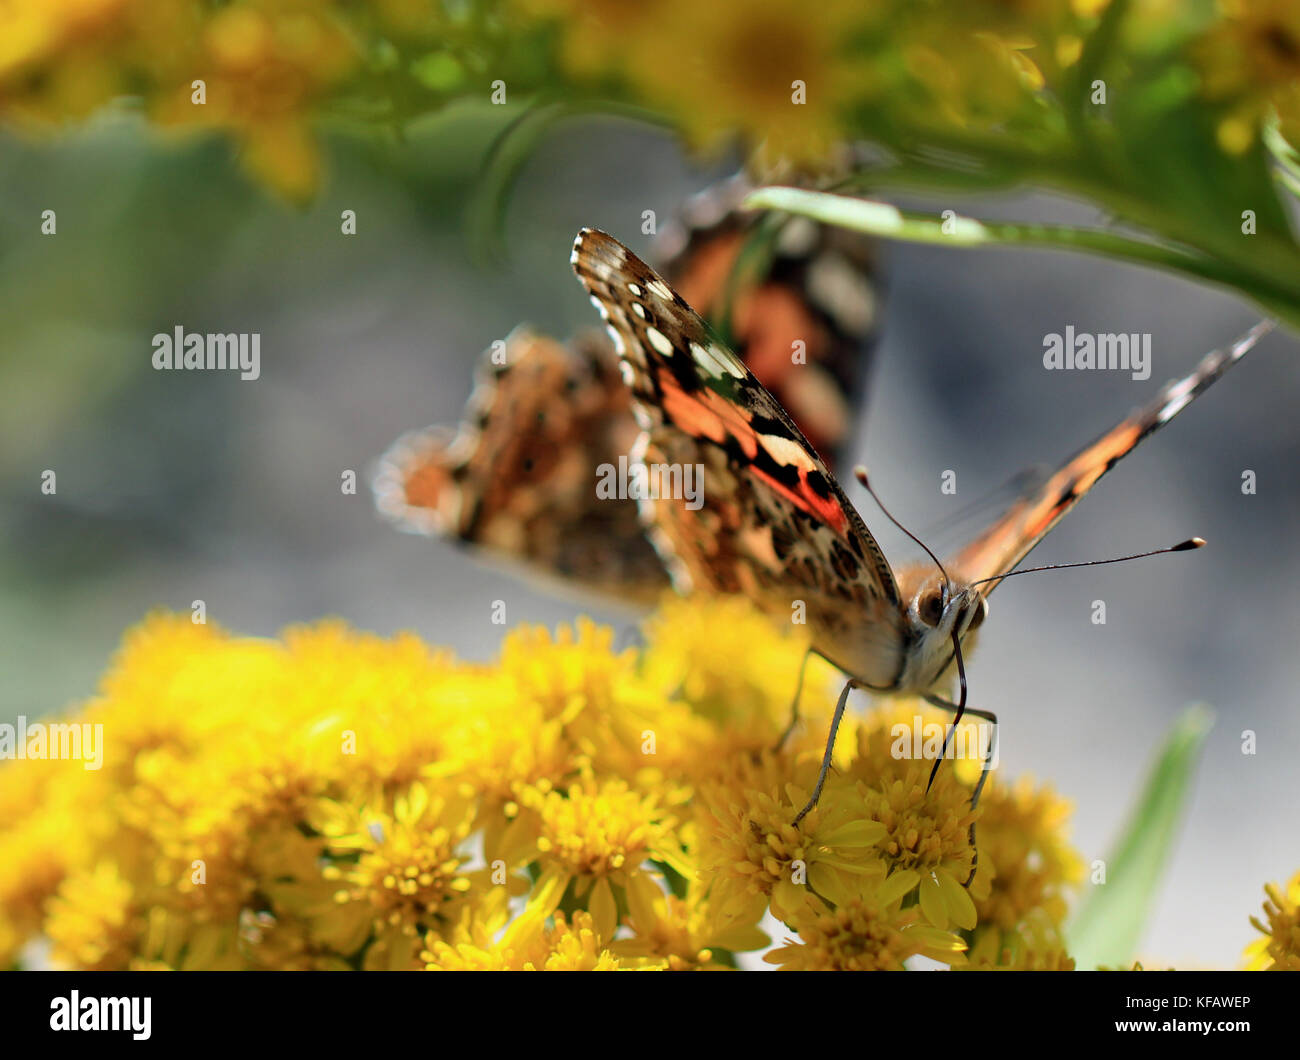 Close-up of a Painted lady butterfly (Vanessa cardui) pollinating Goldenrod flowers (Solidago), with visible antennae, - Stock Image